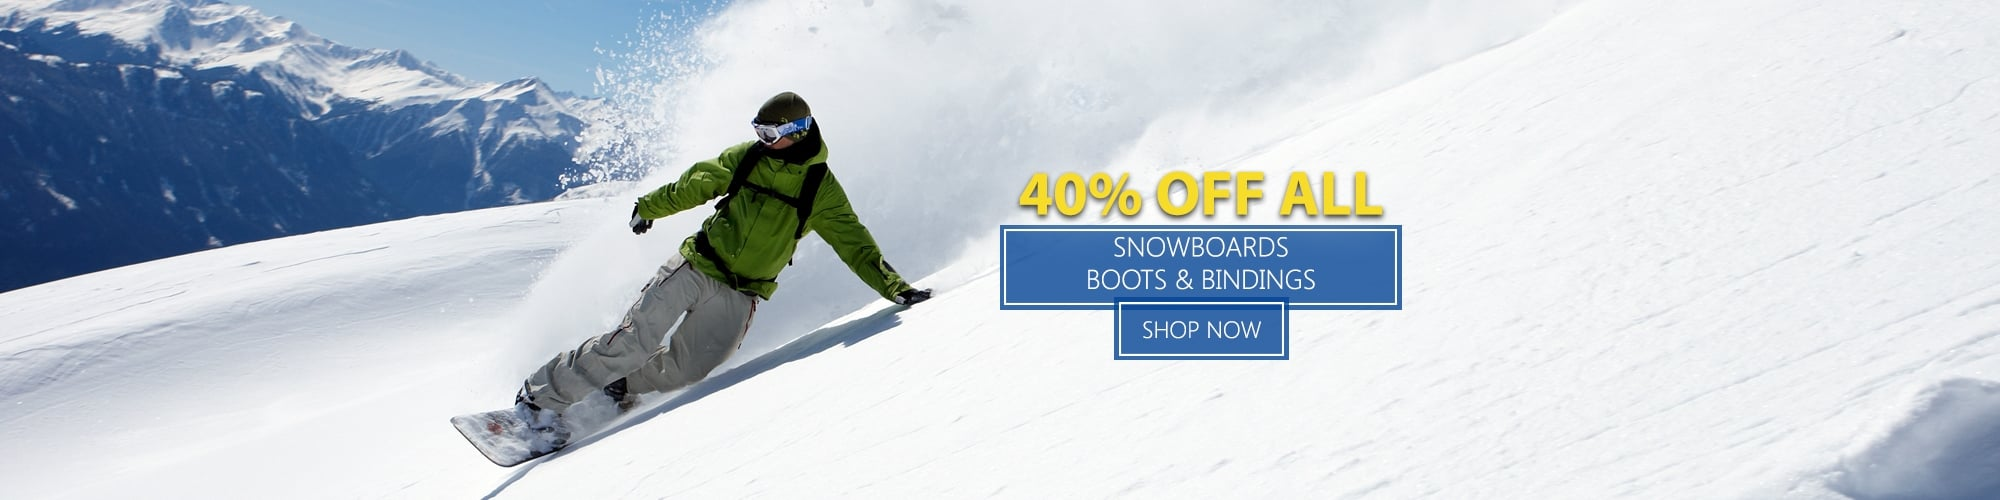 40% Off All Snowboards, Boots and Bindings